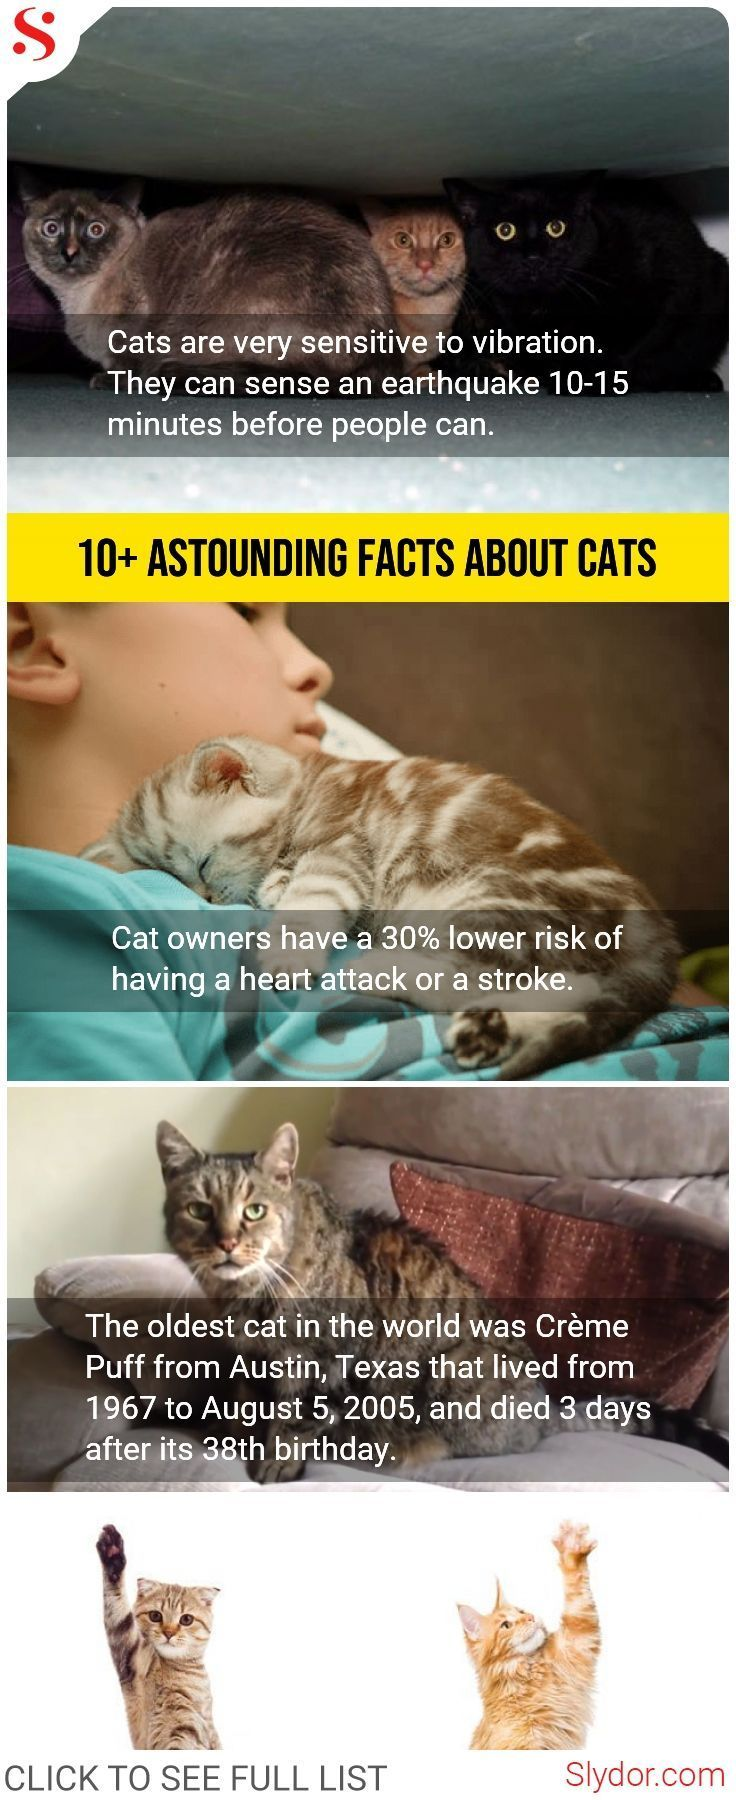 Facts About Cats That Will Stun You For A Moment Facts Animals Cats Catslover Love Wtffacts Unbelievale Stf Slyd Cat Facts Cat Facts Funny Funny Facts